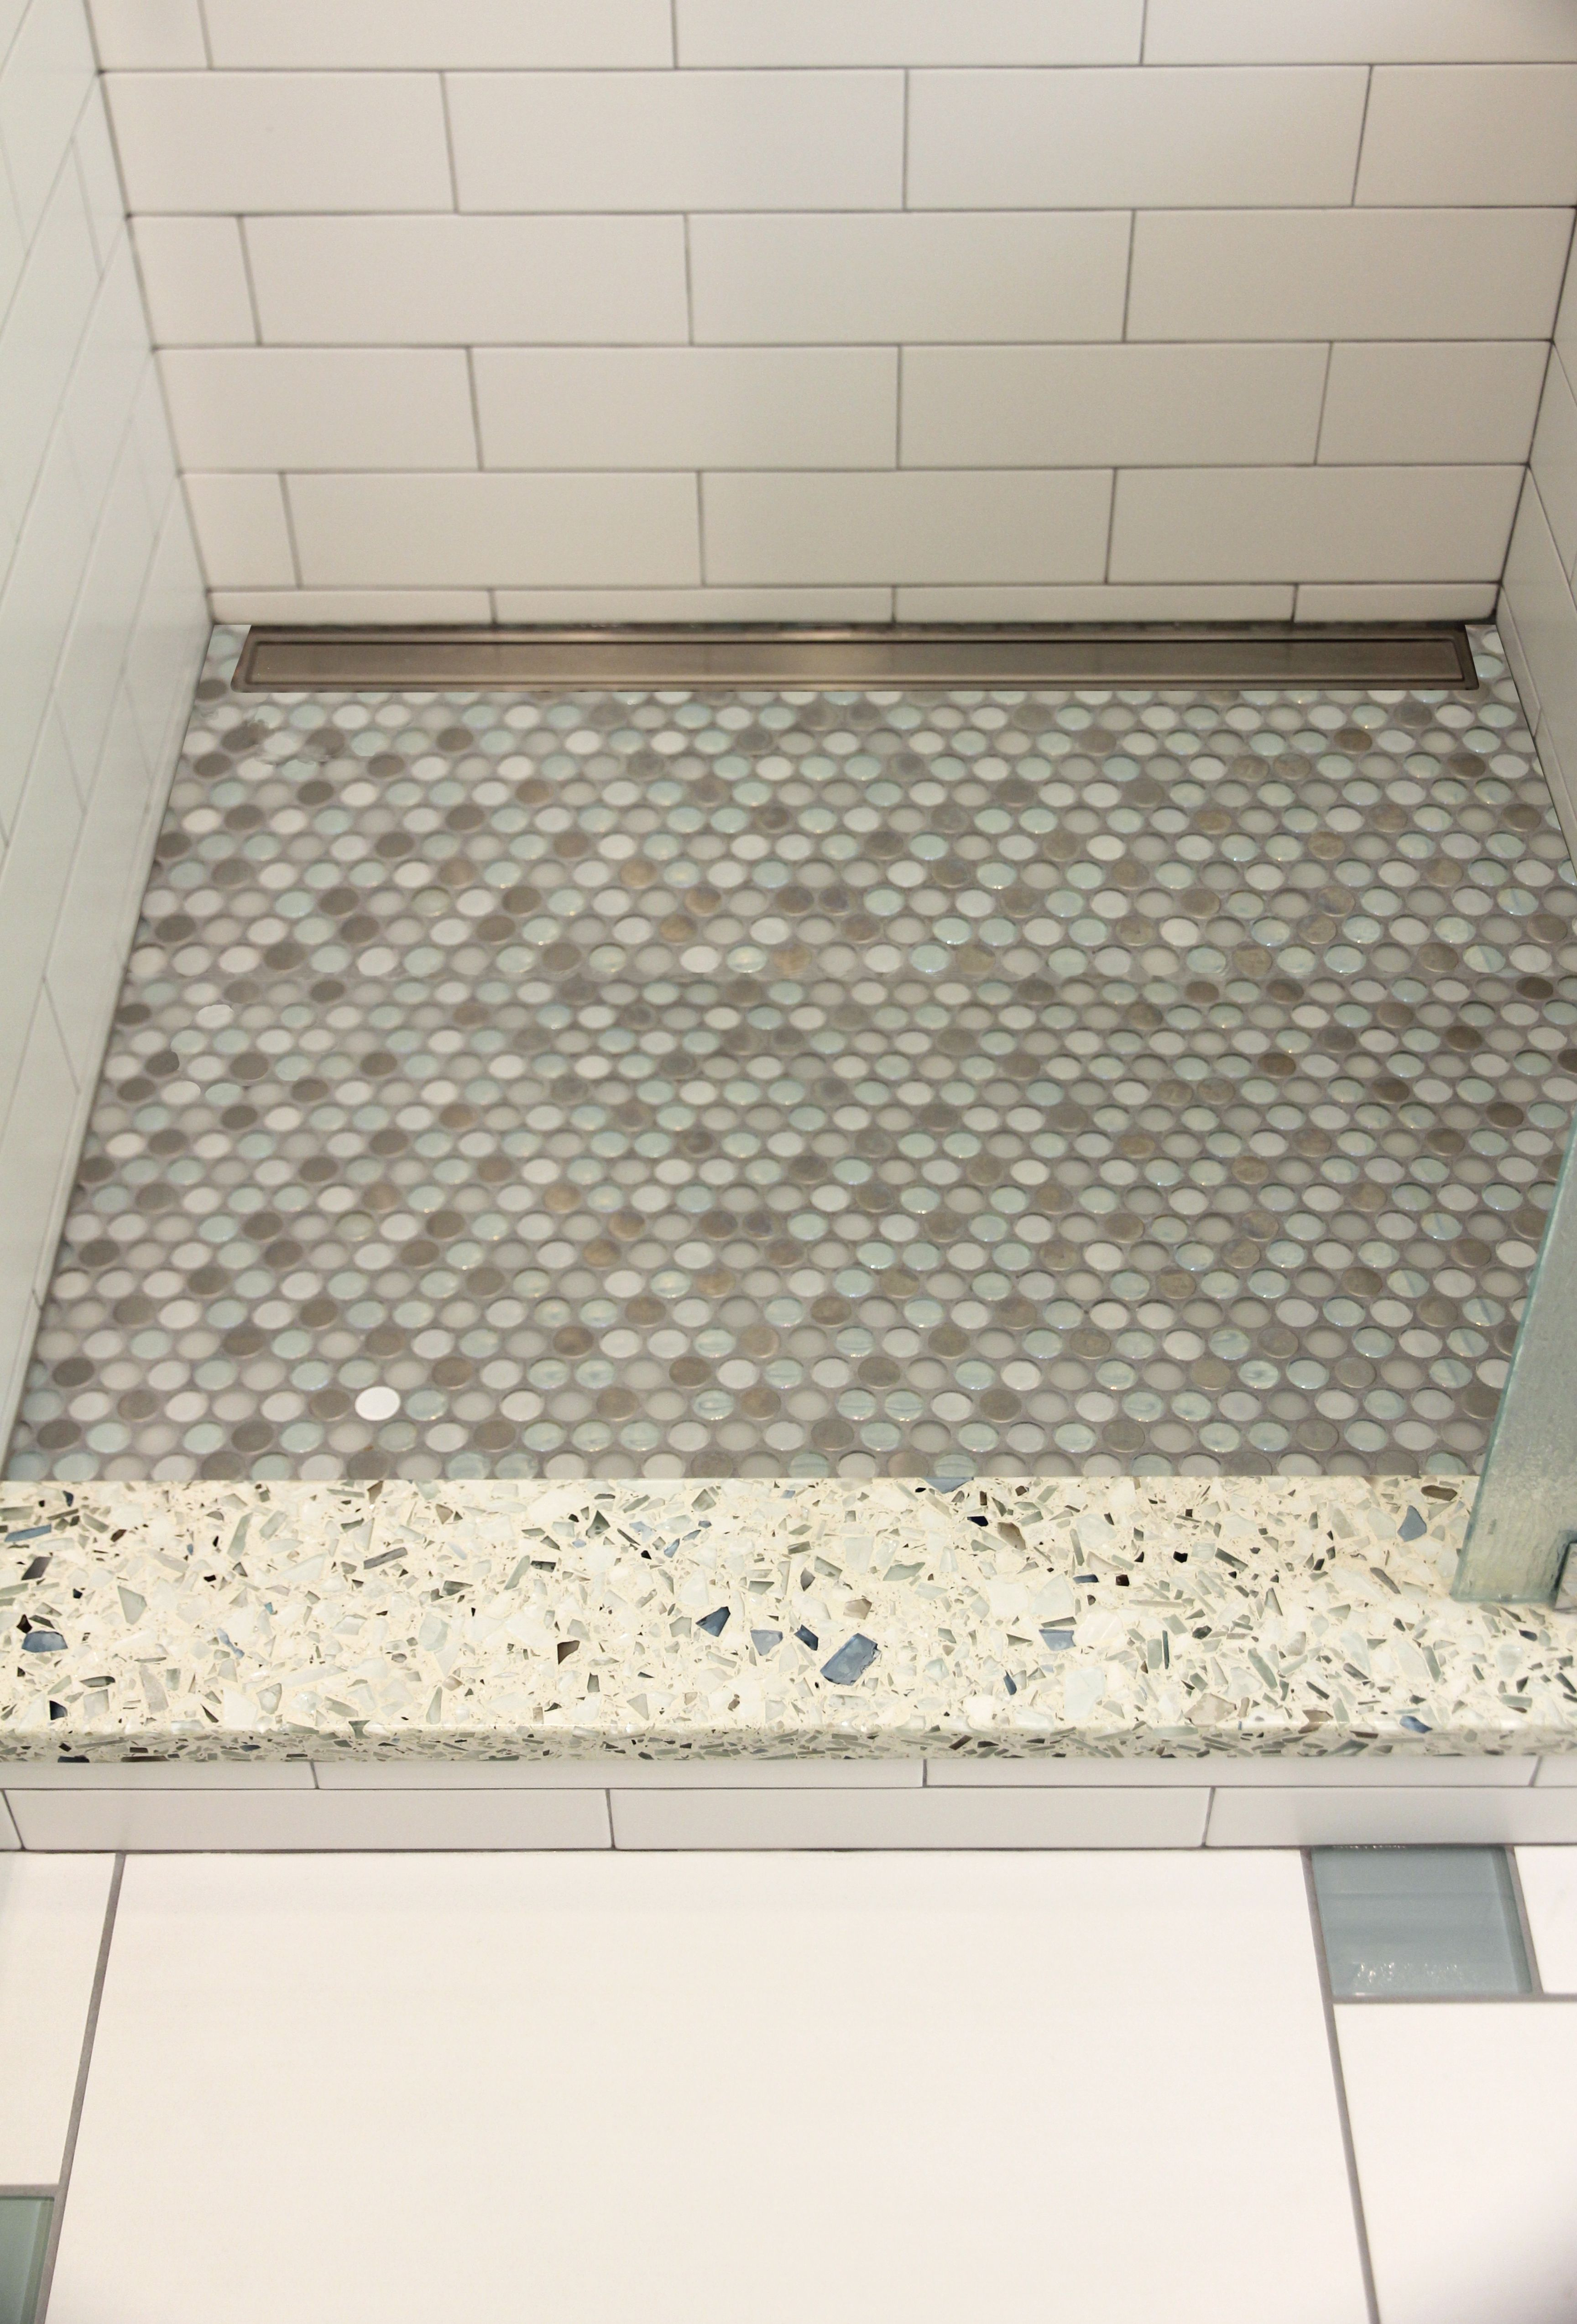 Shower threshold in vetrazzo, penny mosaic tile shower floor with ...